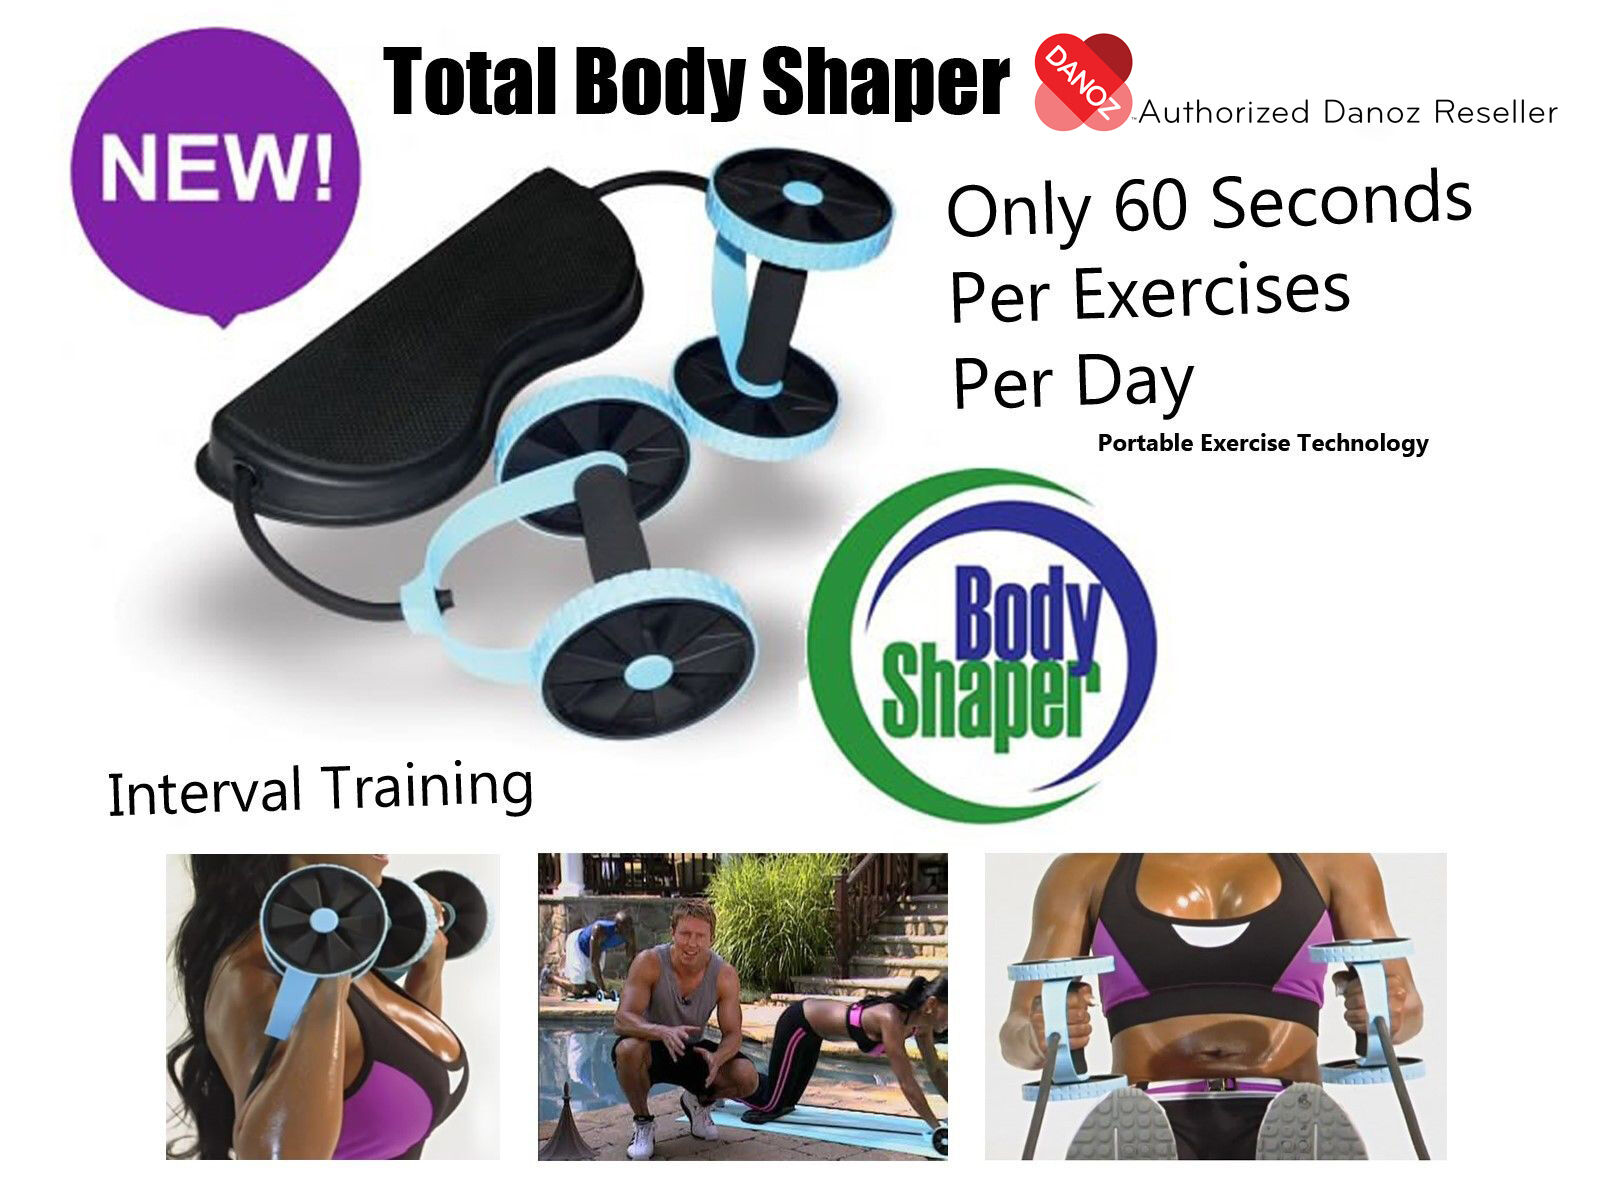 Danoz Total Body Shaper + WARRANTY  PORTABLE  AUTHENTIC  Only 60 Seconds Per Day